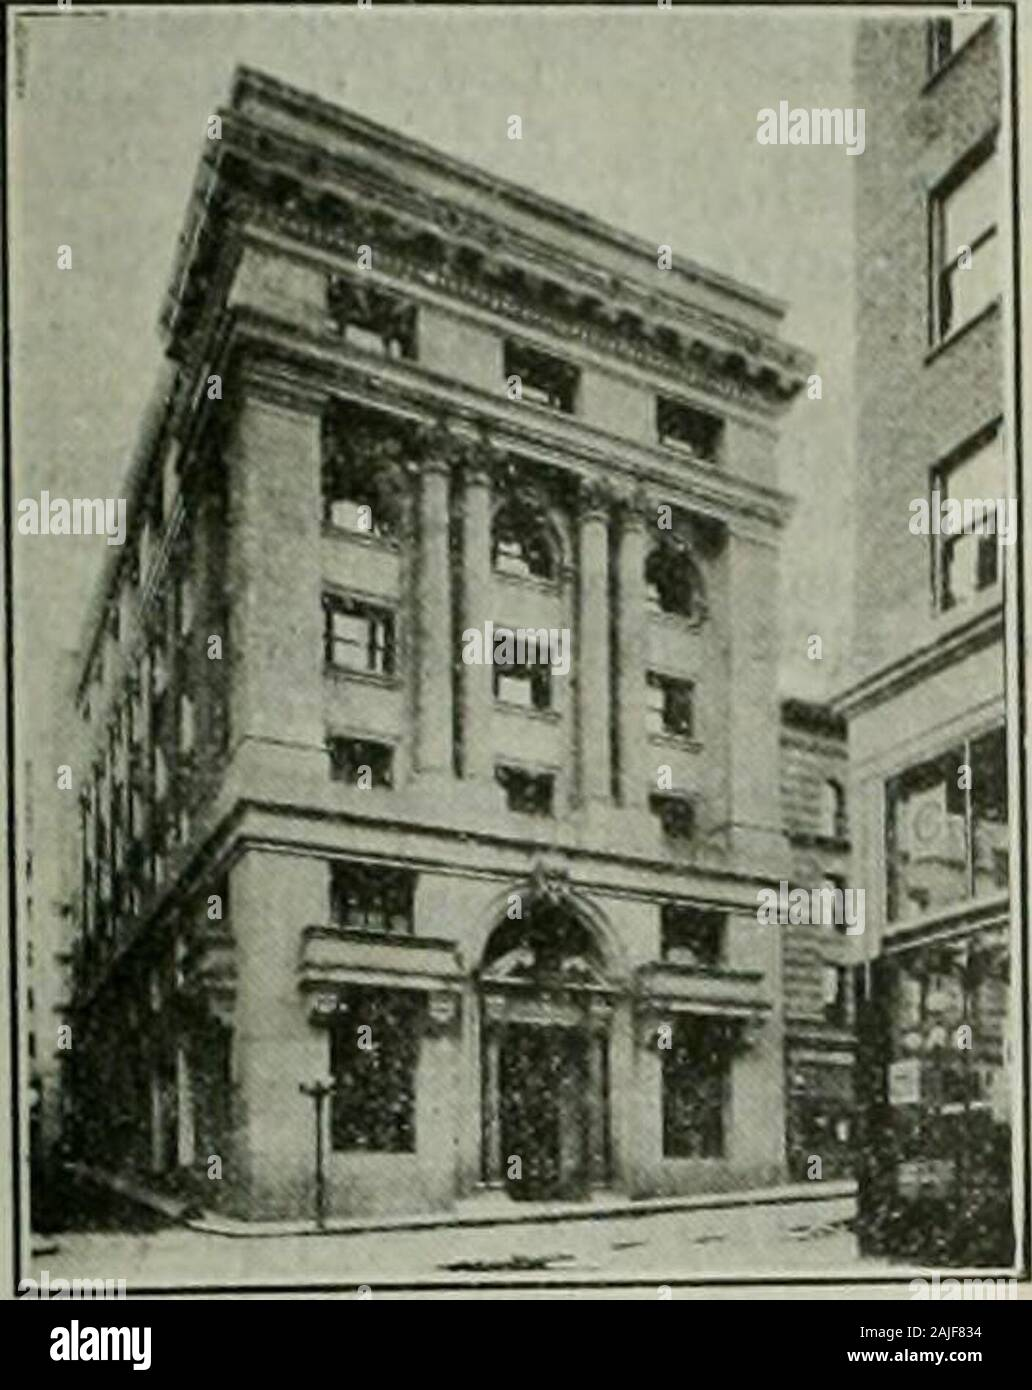 Building And Industrial News Italian Civic Buildingsan Francisco Italo Zanolini Architectsan Francisco Building And Industrial News March 11 1913 Plate B Building And Industrial News 17 Office Pacific Tel Tel Co Basement